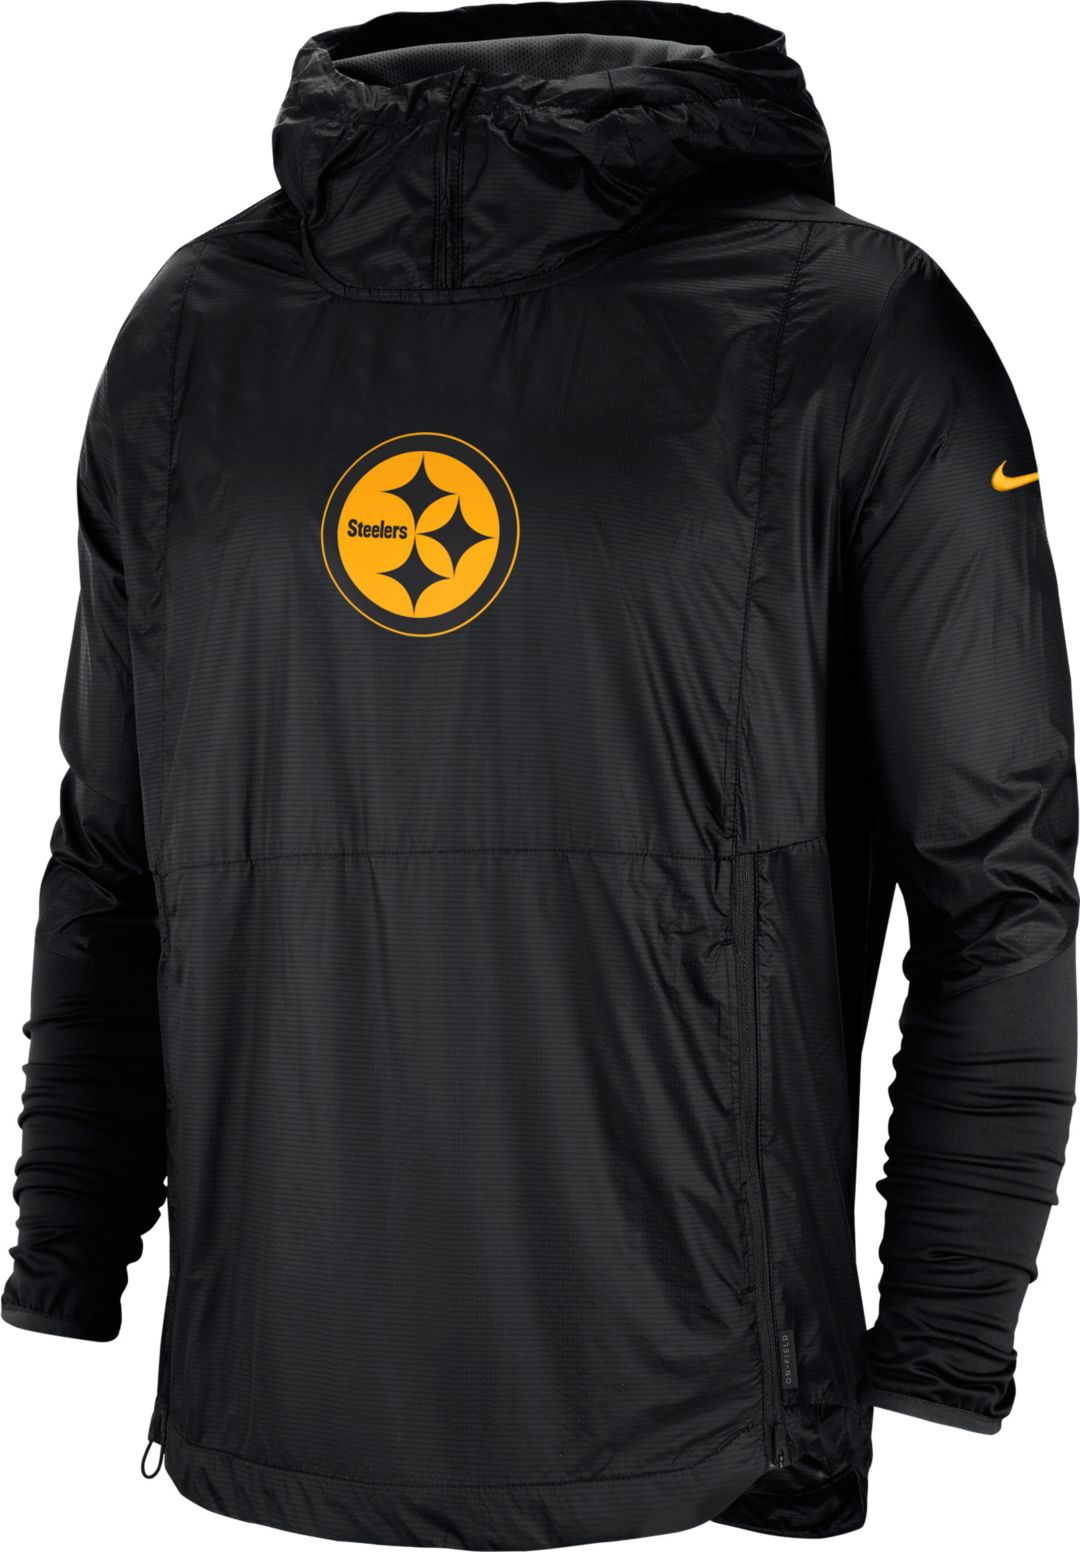 new concept a57c3 7012b Nike Men's Pittsburgh Steelers Sideline Repel Player Black Jacket